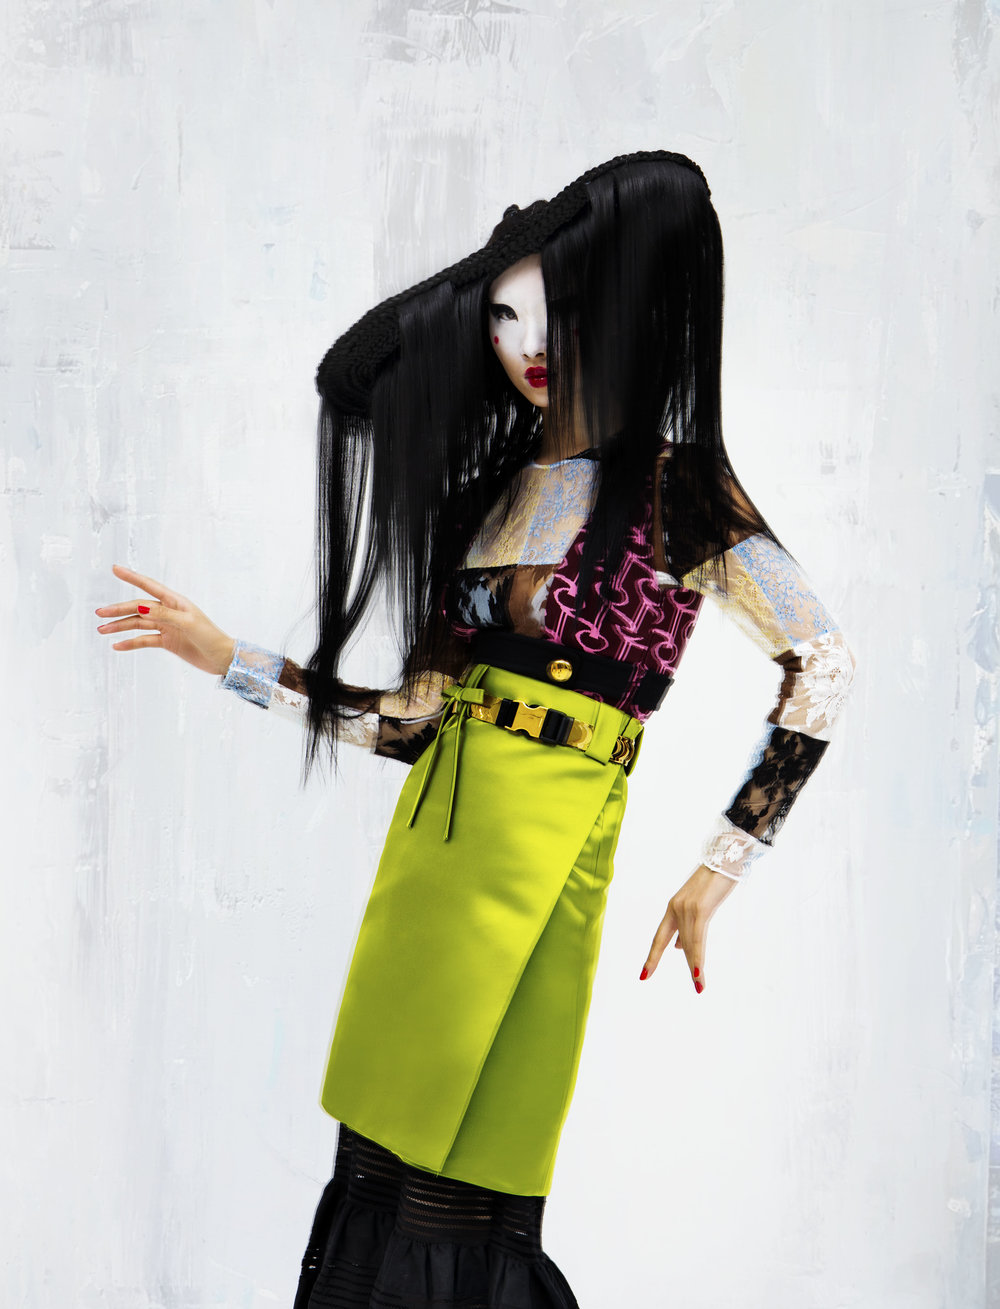 Nick Chan Stylist SCMP Style Magazine Chinese opera Kabuki theatre Fashion Editorial 6.jpg